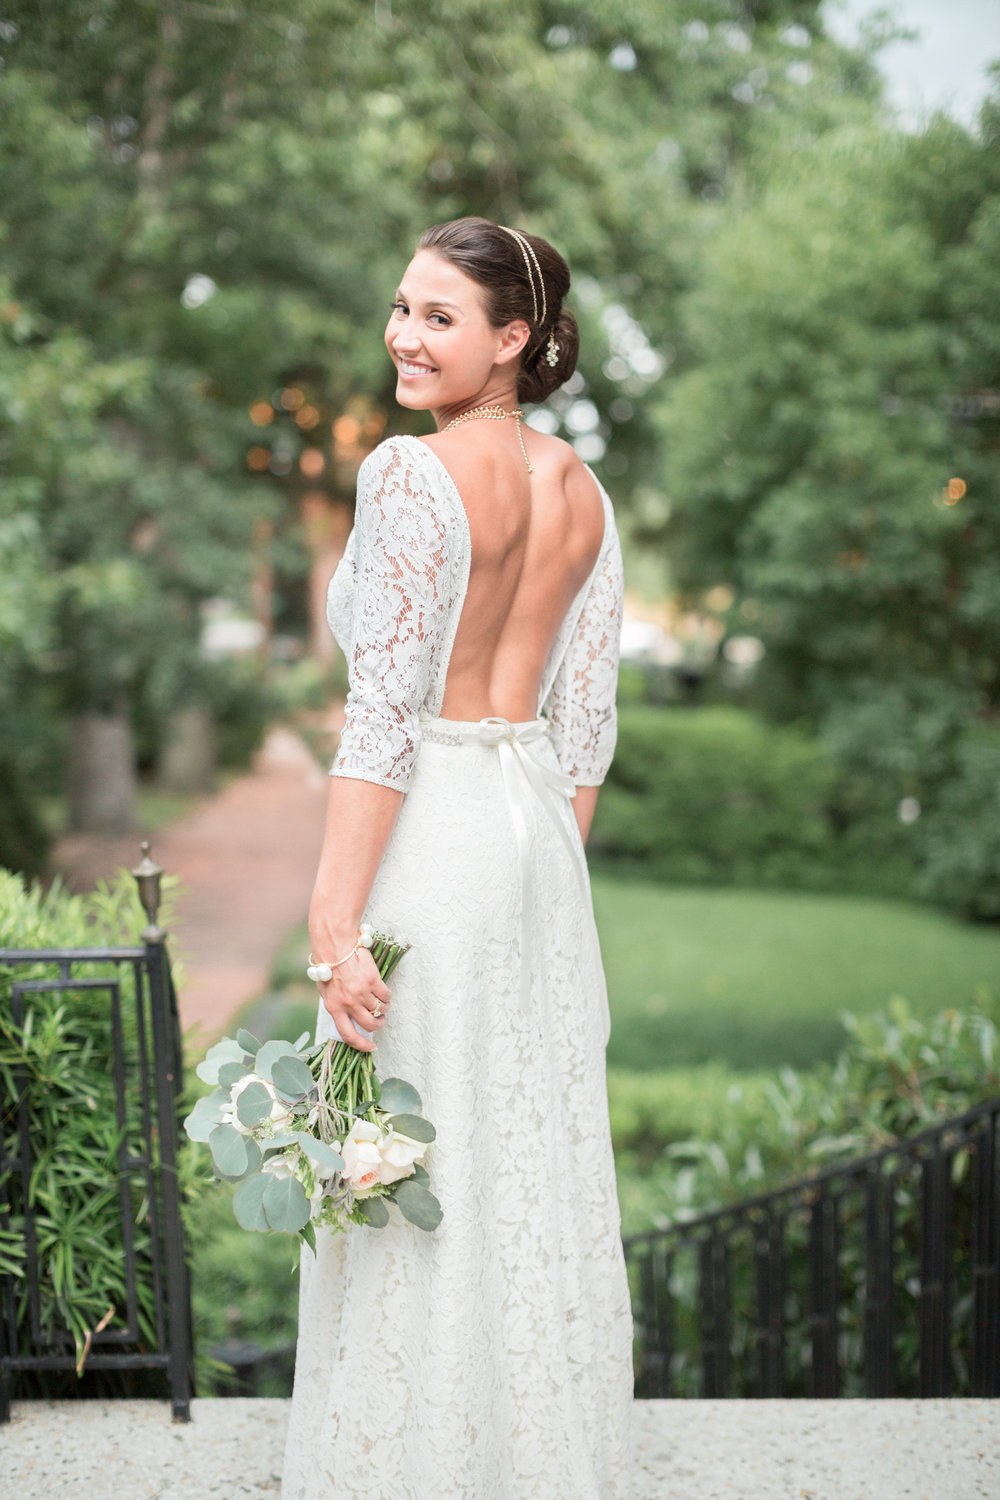 Lyndi-J-Photography-Larger-Than-Life-Events-brockington-hall-ivory-and-beau-bridal-boutique-savannah-wedding-dresses-savannah-bridal-gowns-rebecca-schoneveld-elsa-savannah-weddings-georgia-bridal-boutique-jacksonville-bridal-charleston-bridal-38.jpg